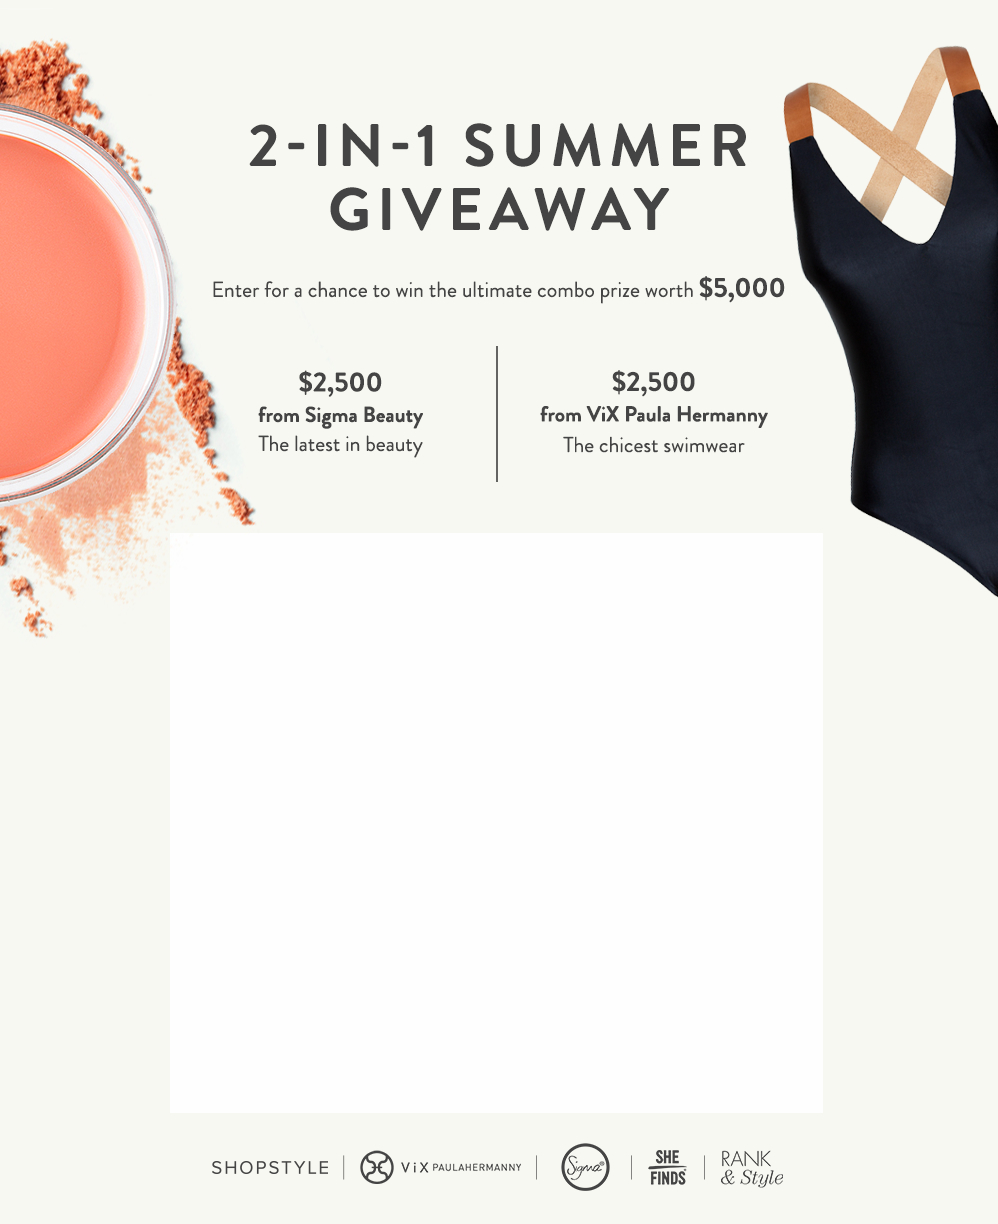 2-in-1 Summer Giveaway